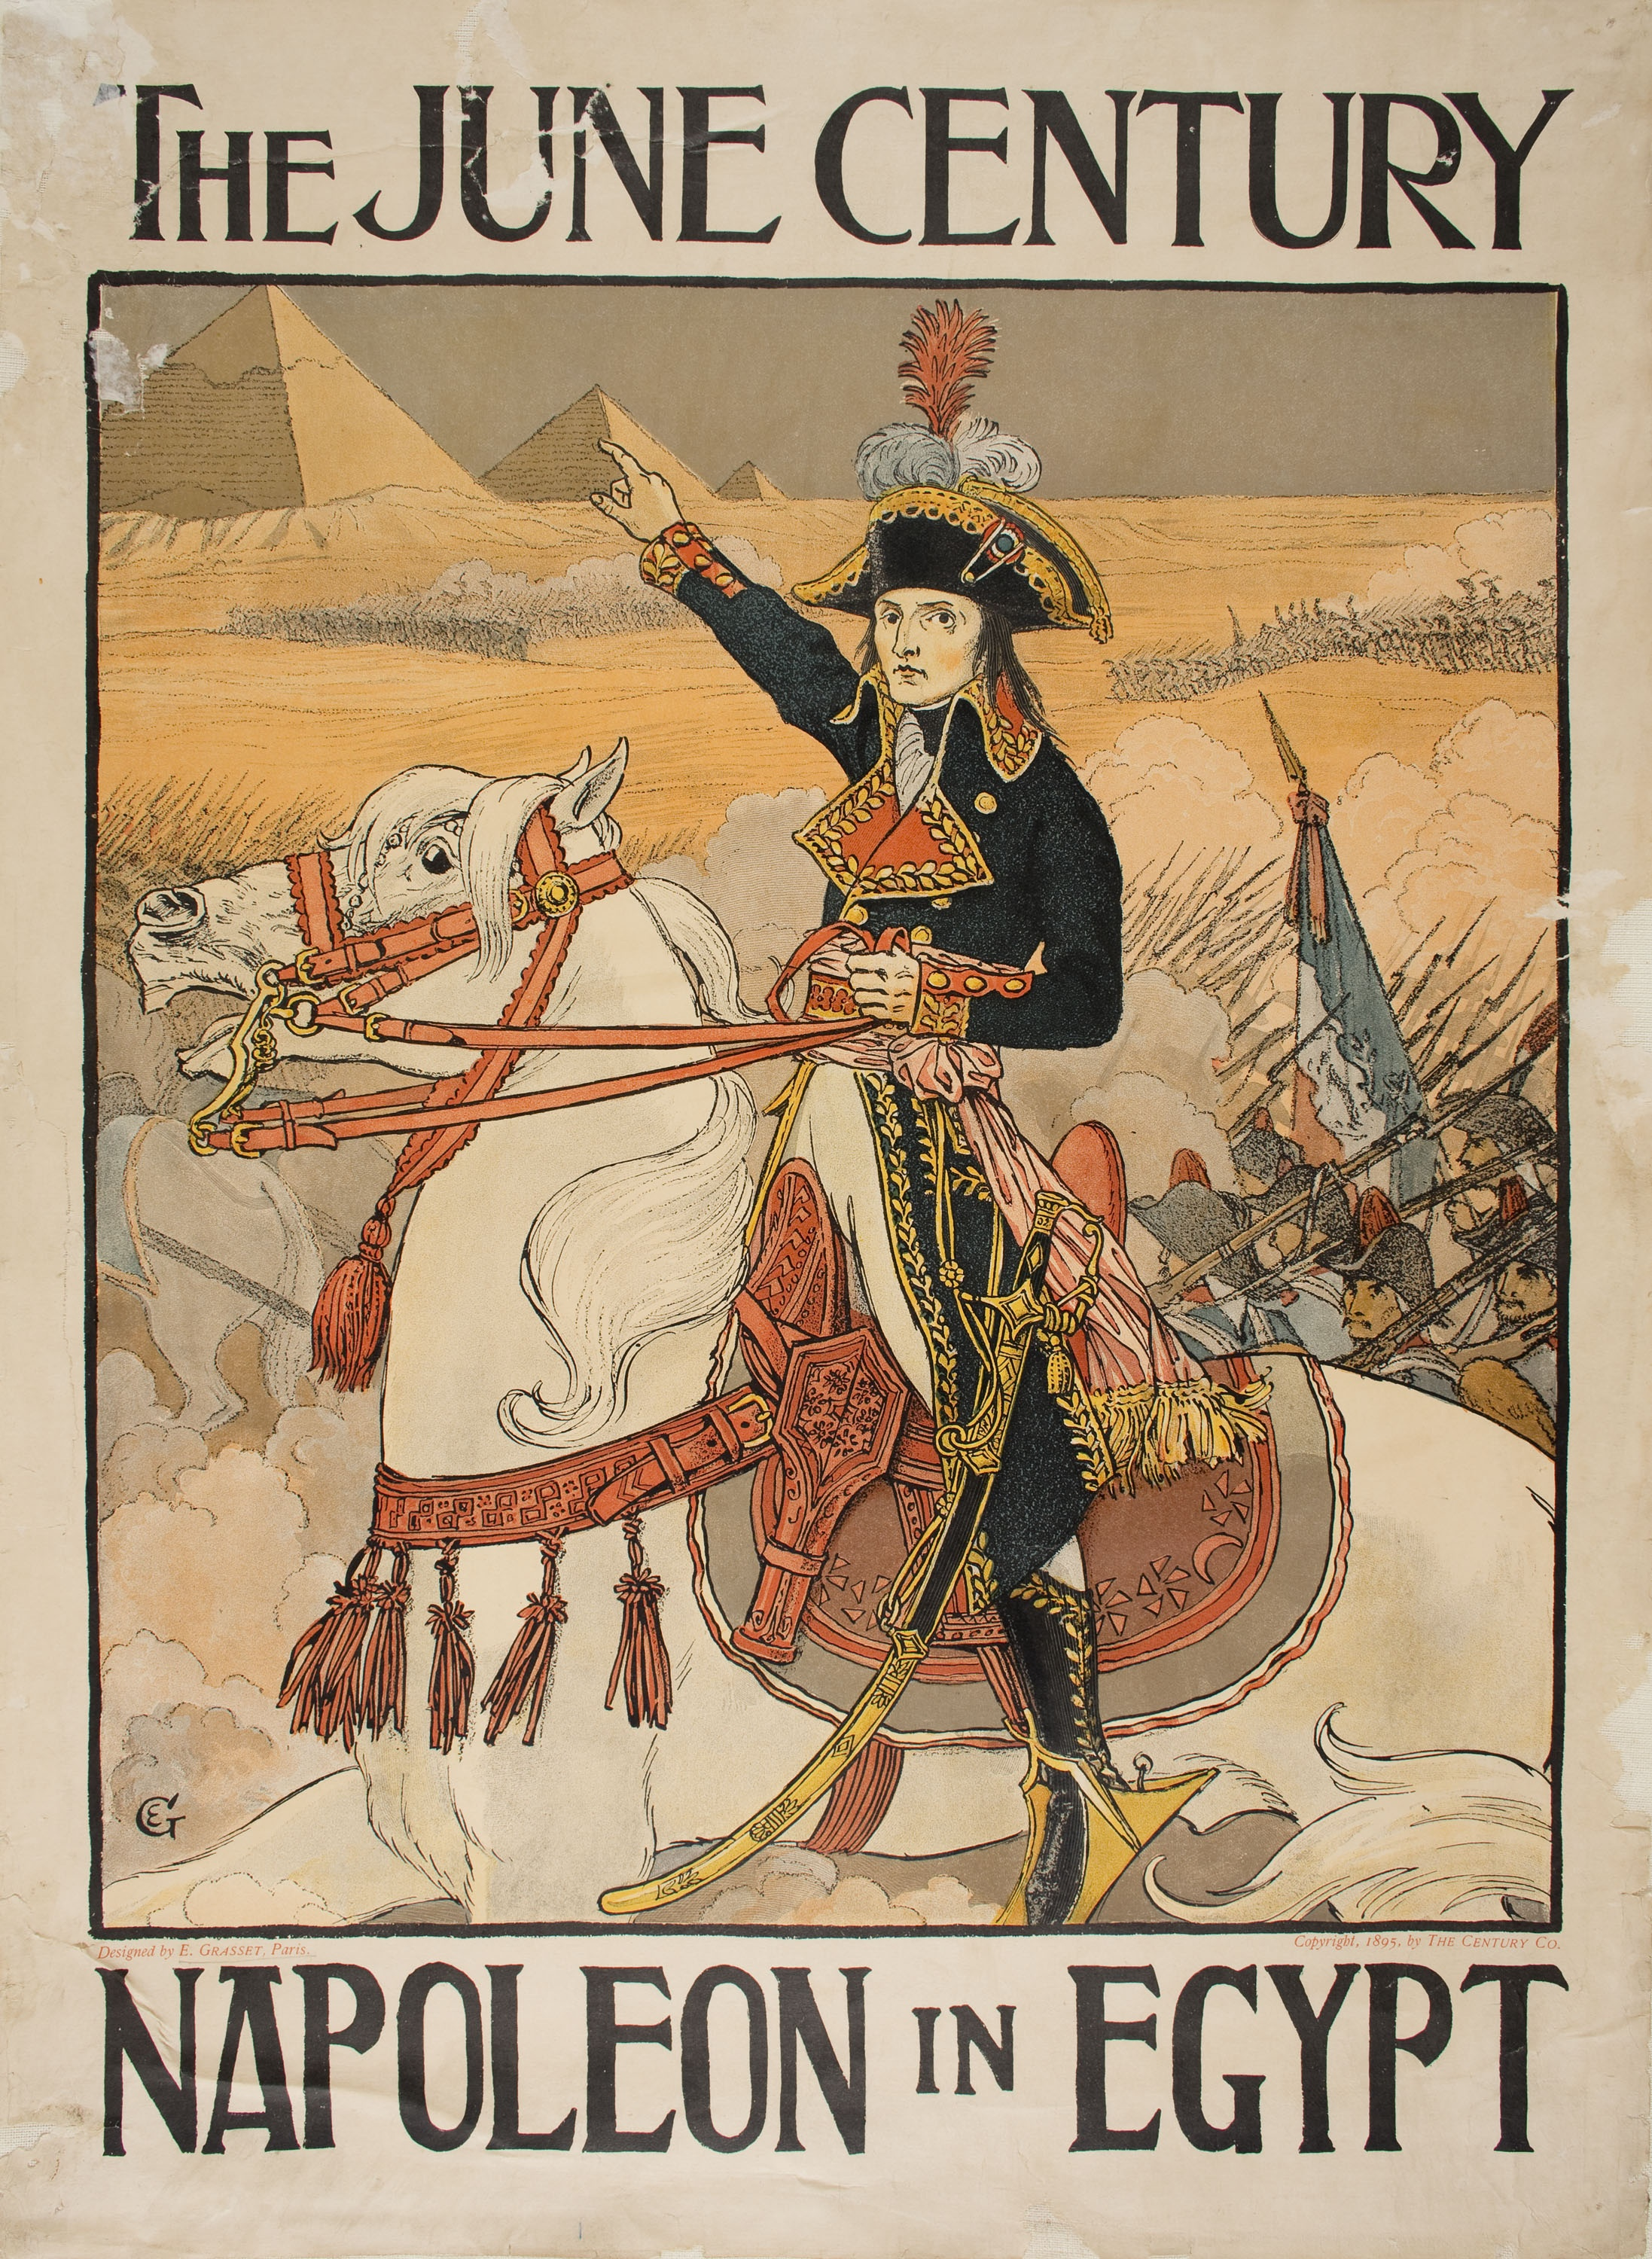 Eugène Samuel Grasset - The June Century. Napoleon in Egypt - 1895